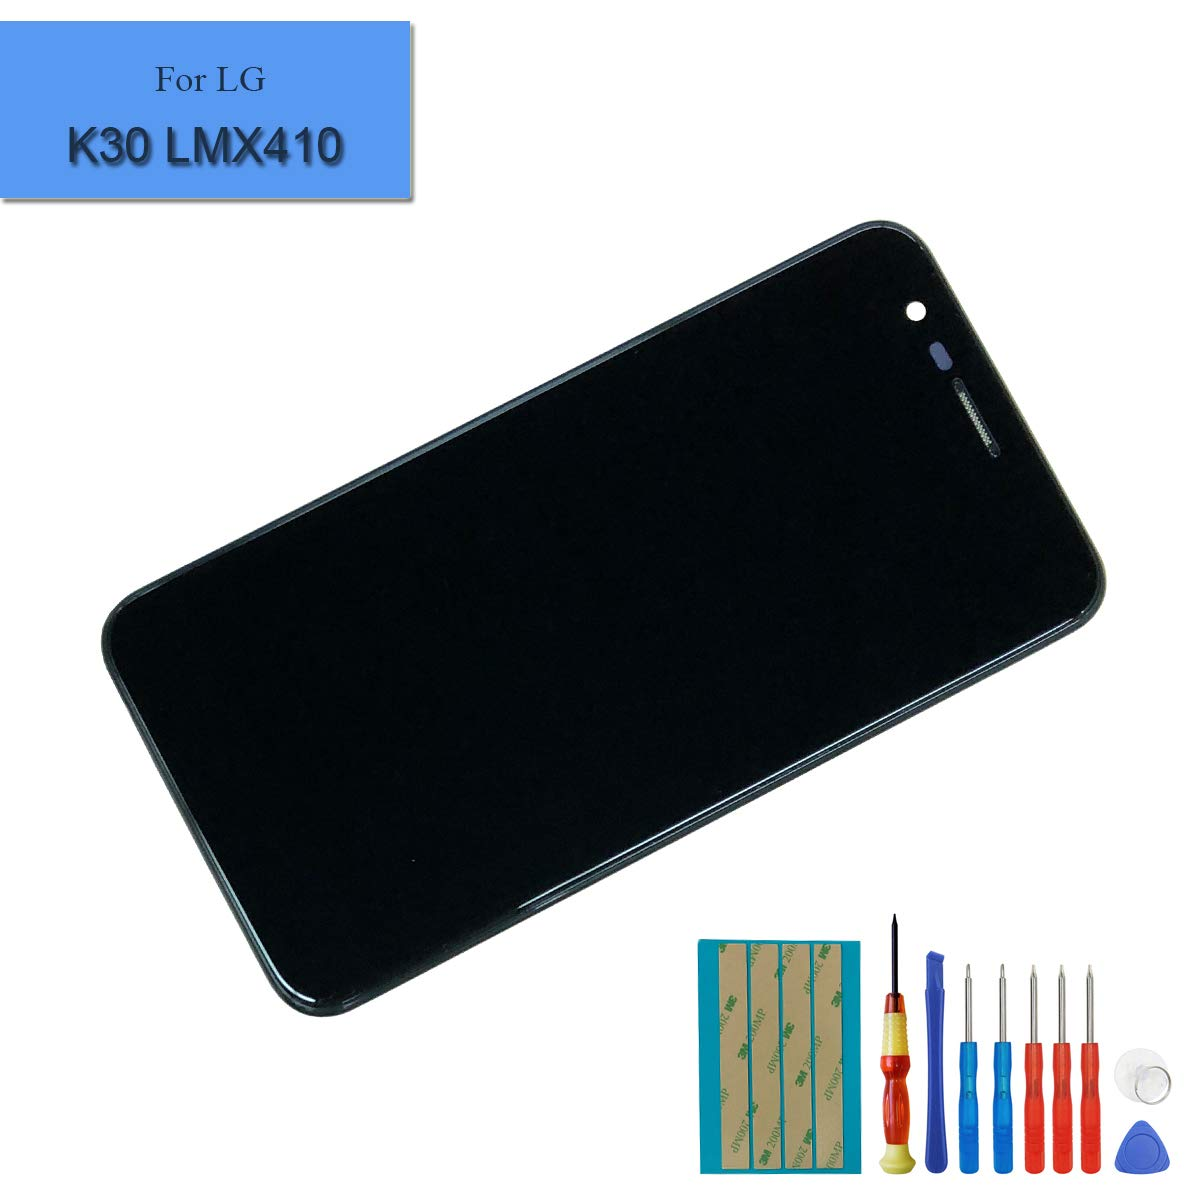 New Replacement LCD Touch Screen Compatible with LG K30 K10 2018 K10a K10+ LMX410 LMX410TK Black Digitizer Full Assembly with Frame + Adhesive + Tools